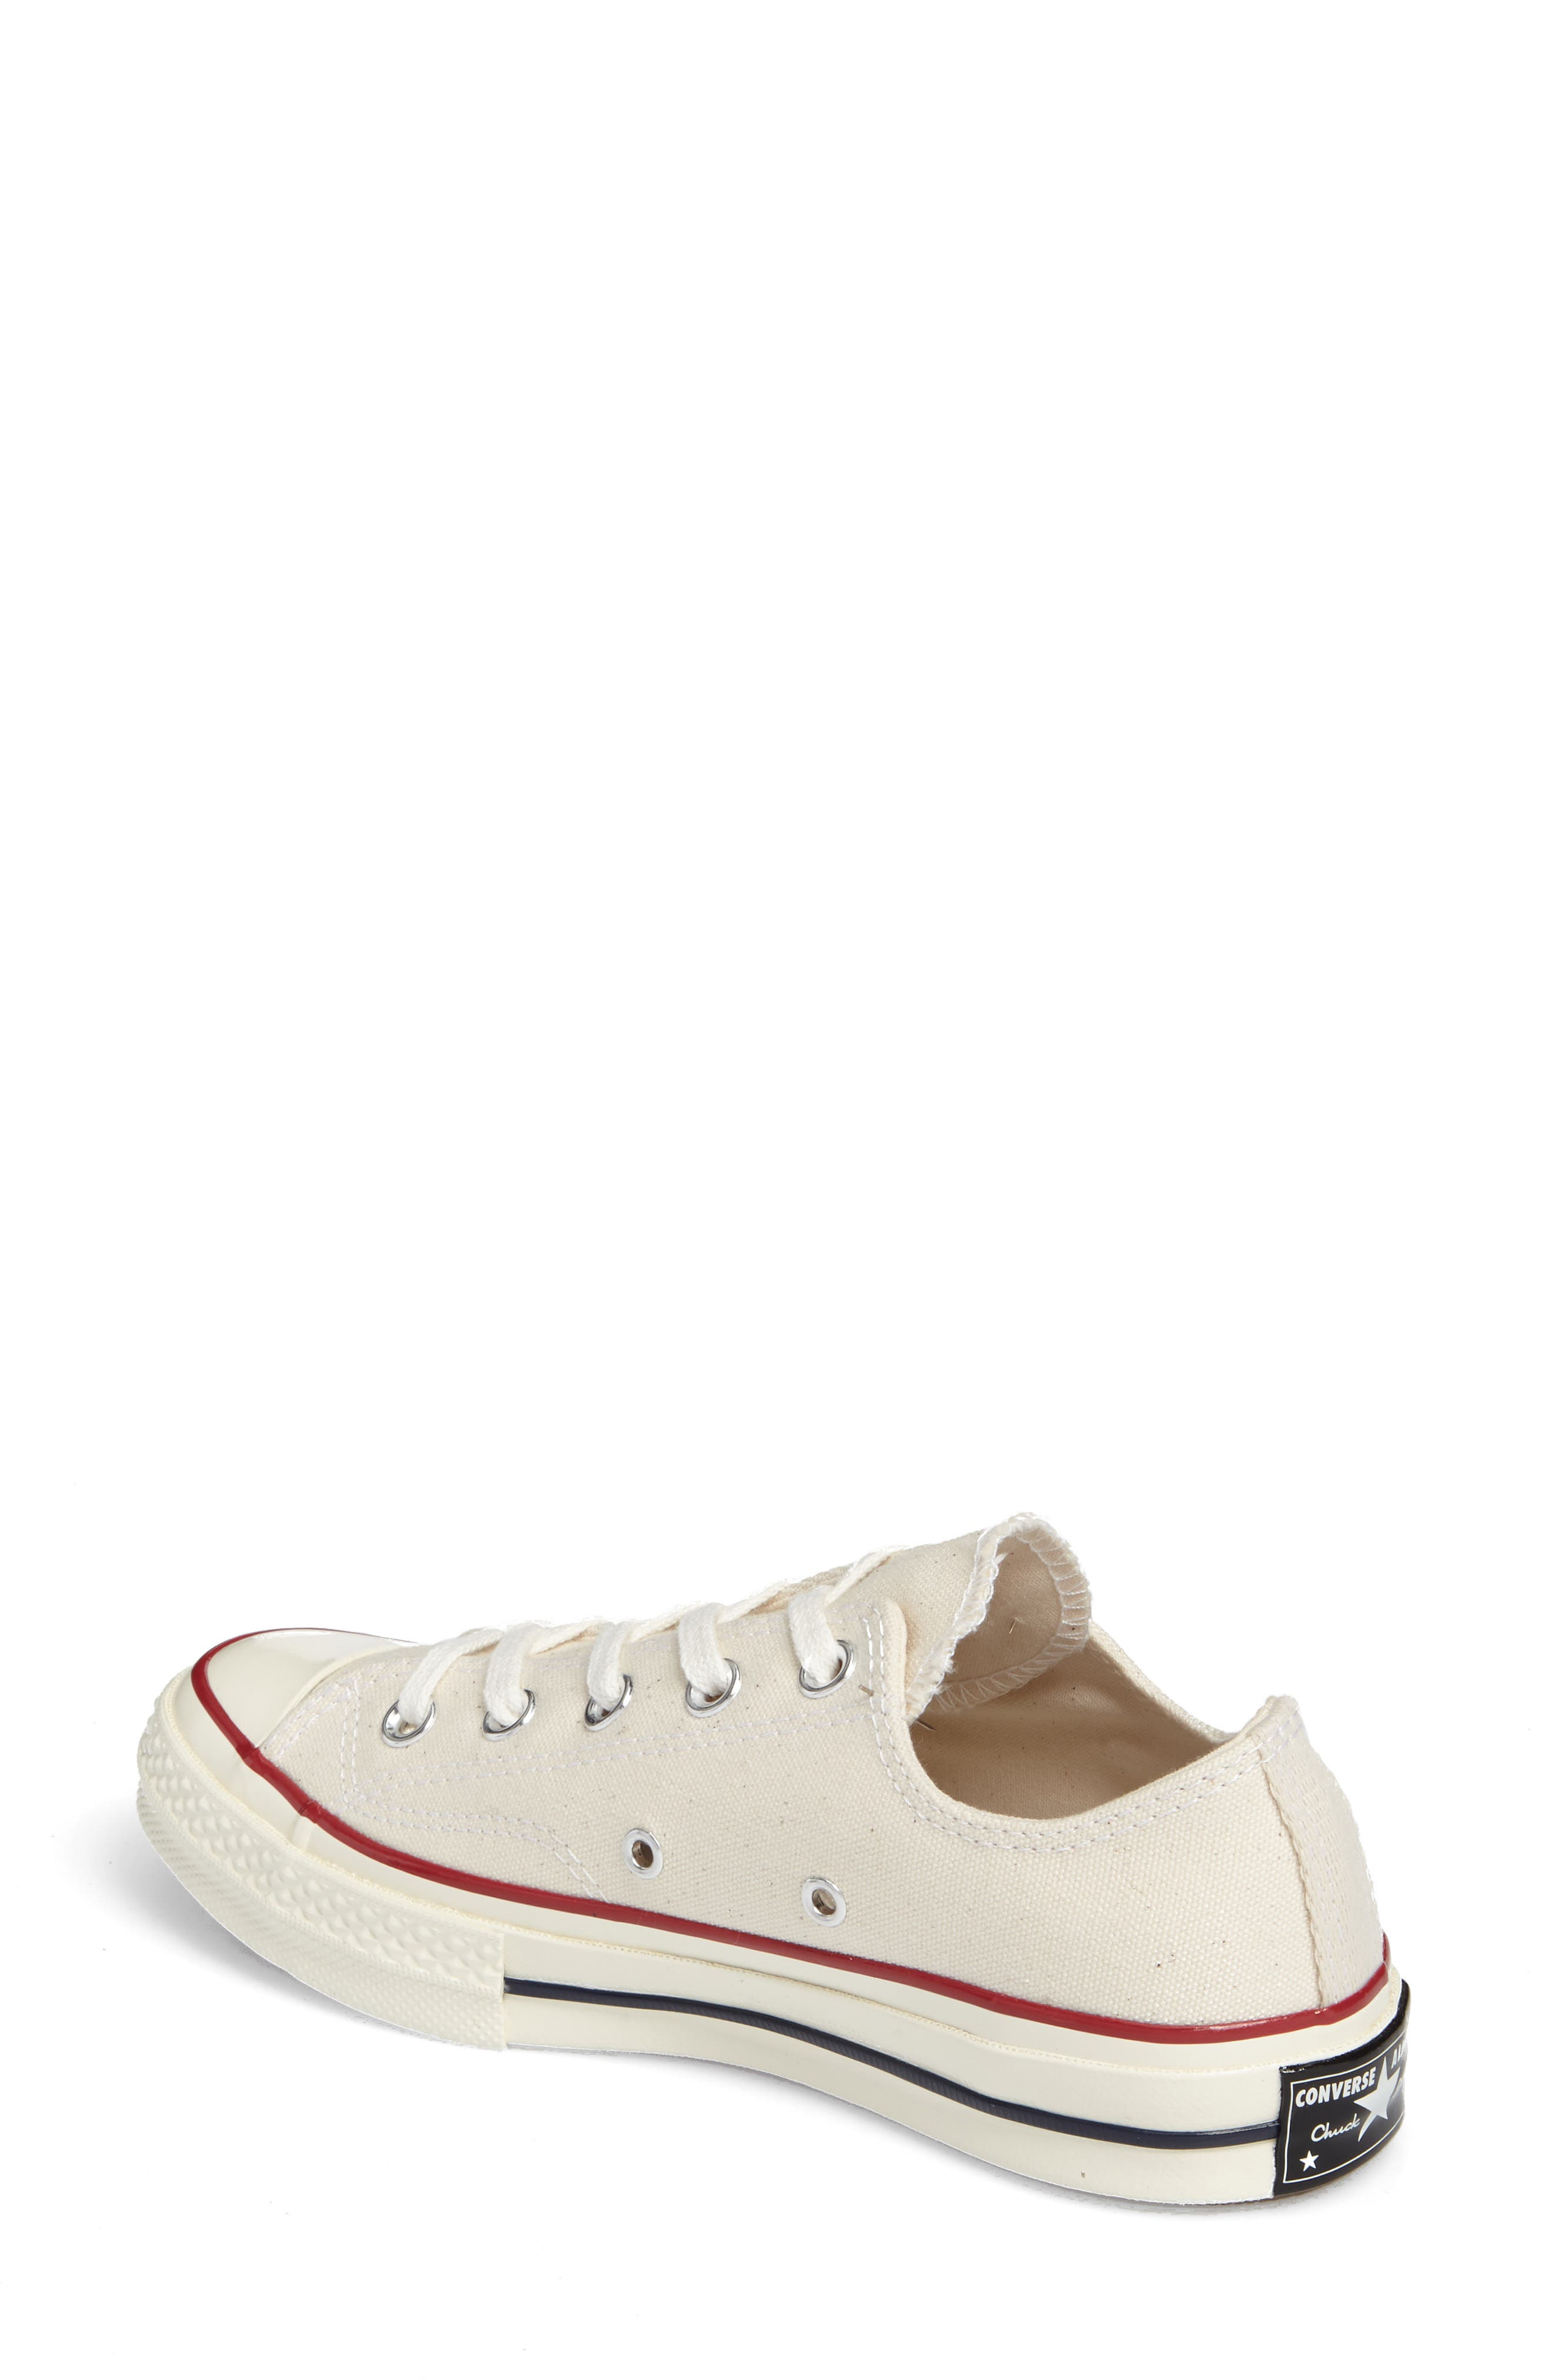 Chuck Taylor<sup>®</sup> All Star<sup>®</sup> Ox Low Top Sneaker,                             Alternate thumbnail 2, color,                             PARCHMENT